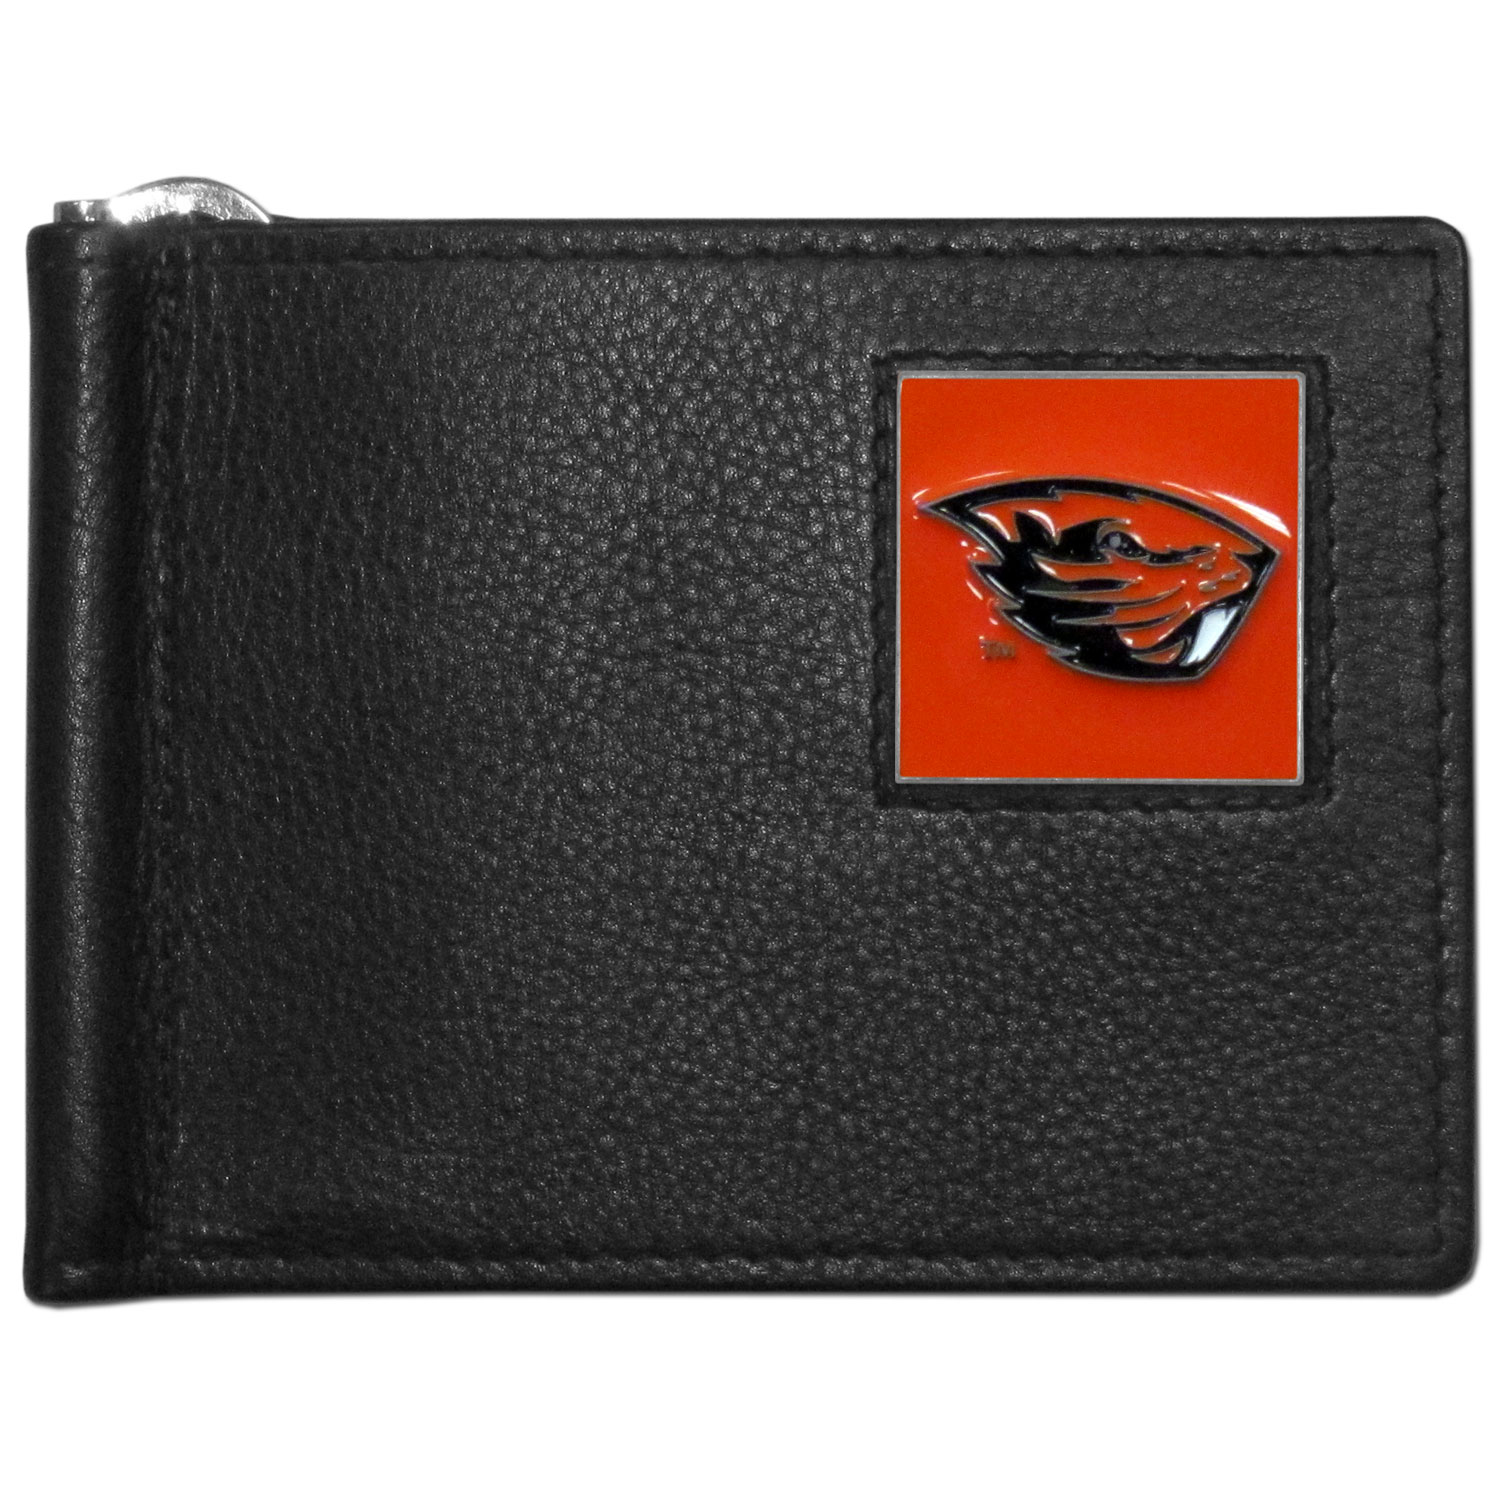 Oregon St. Beavers Leather Bill Clip Wallet - This cool new style wallet features an inner, metal bill clip that lips up for easy access. The super slim wallet holds tons of stuff with ample pockets, credit card slots & windowed ID slot. The wallet is made of genuine fine grain leather and it finished with a metal Oregon St. Beavers emblem. The wallet is shipped in gift box packaging.